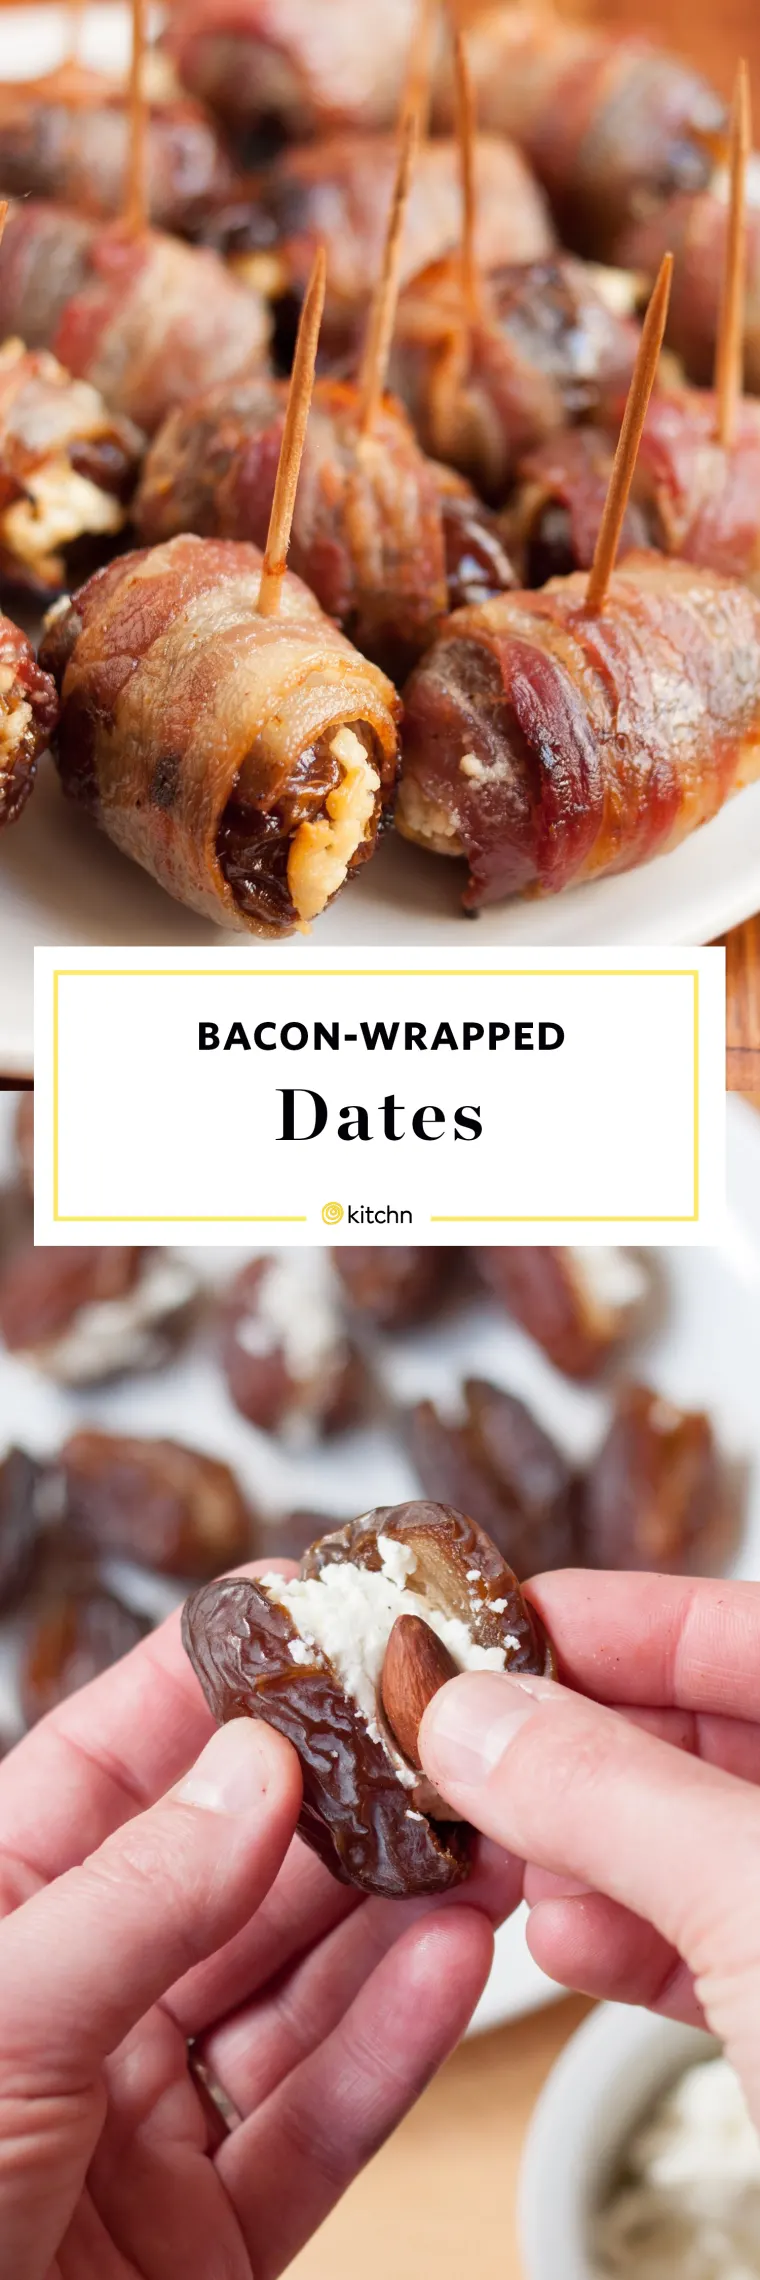 How To Make BaconWrapped Dates Recipe in 2020 Bacon